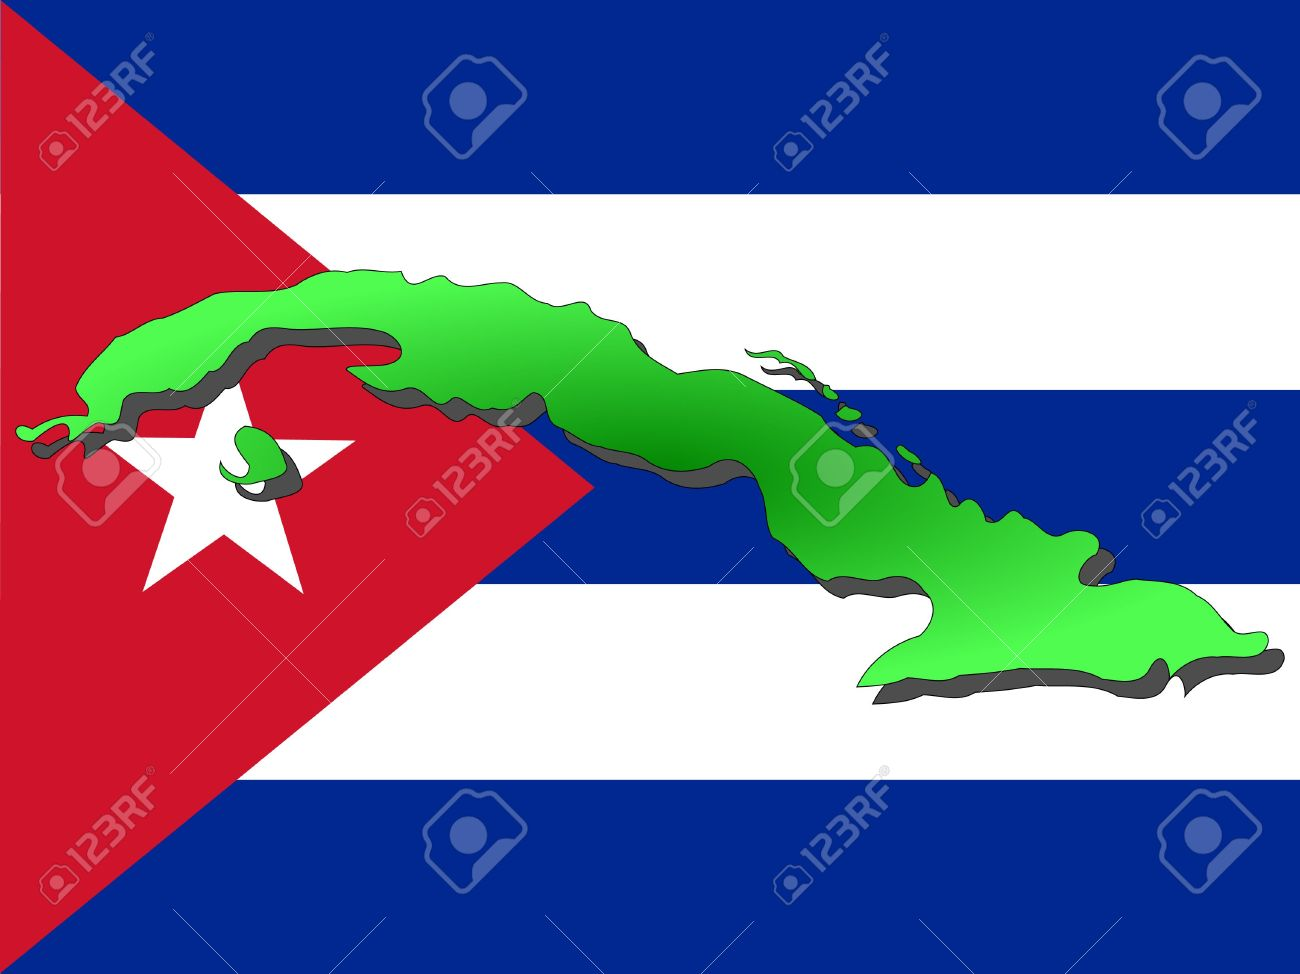 Map Of Cuba And Cuban Flag Illustration Stock Photo, Picture And.